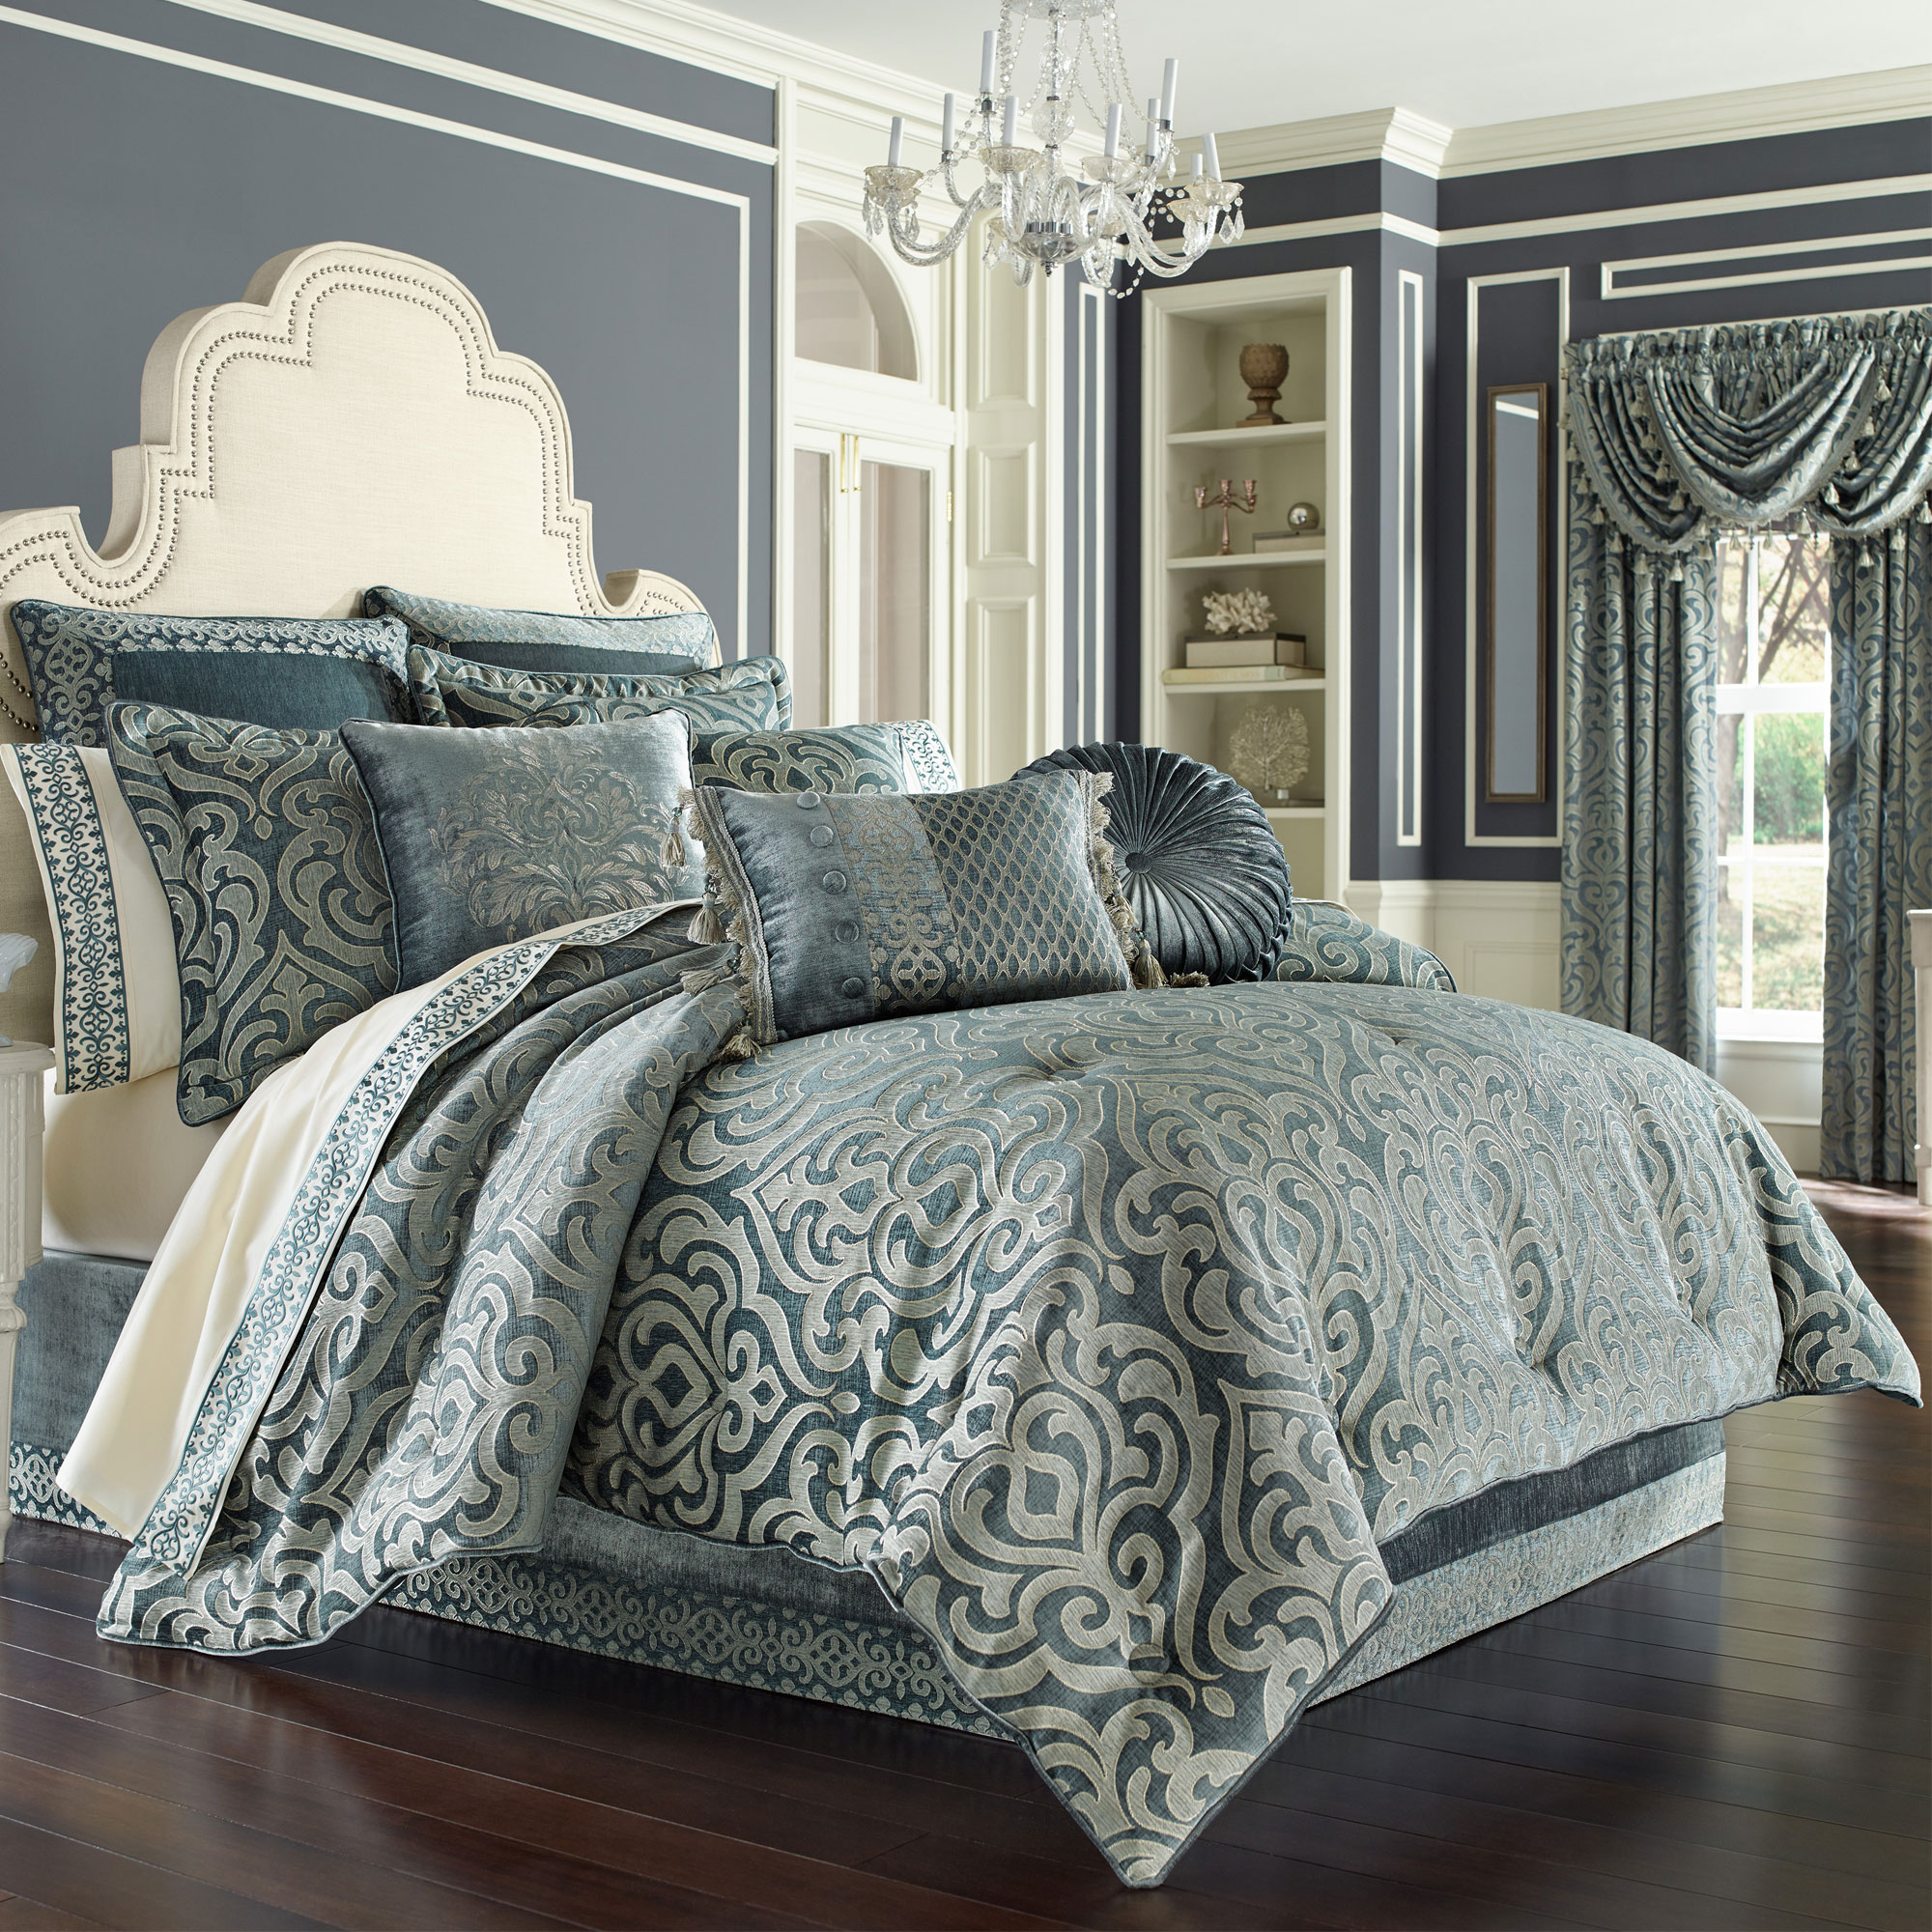 gorgeous lodge teal set ecrins comforter flowers king